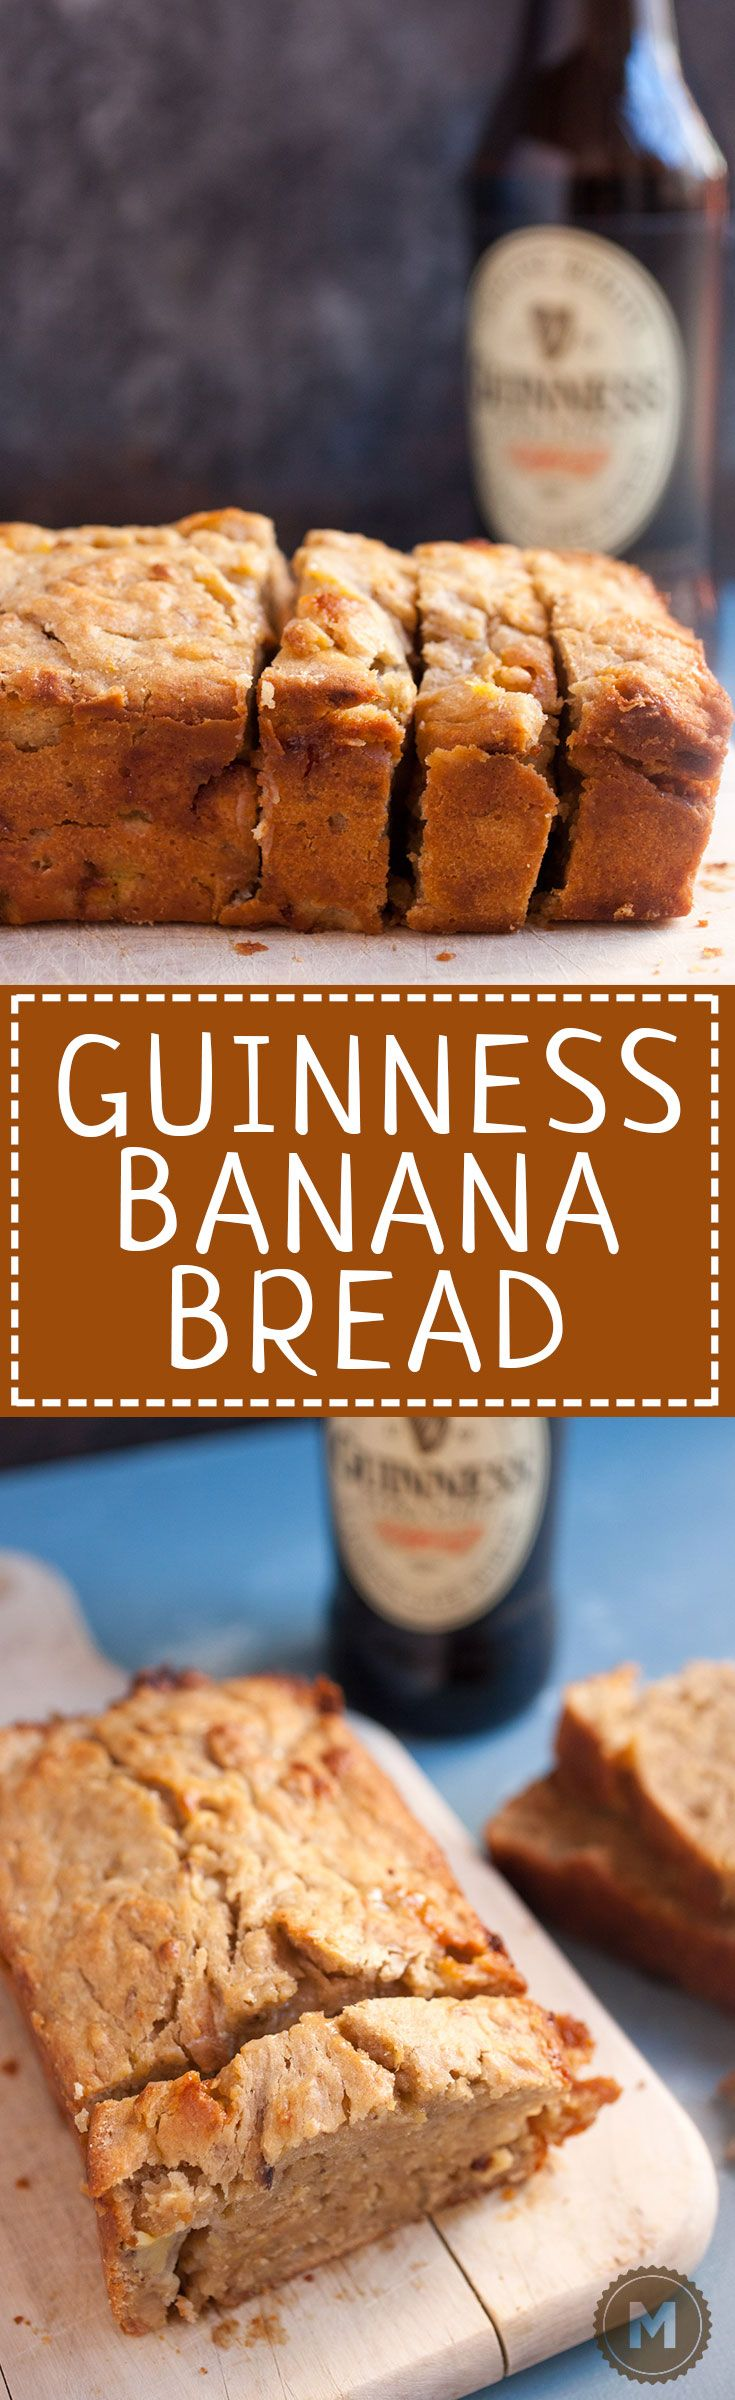 Guinness Banana Bread: At some point in your life you'll have bananas on the verge of spoiling and there's no better use than a good banana bread! This one uses Guinness and has white chocolate folded in! | macheesmo.com